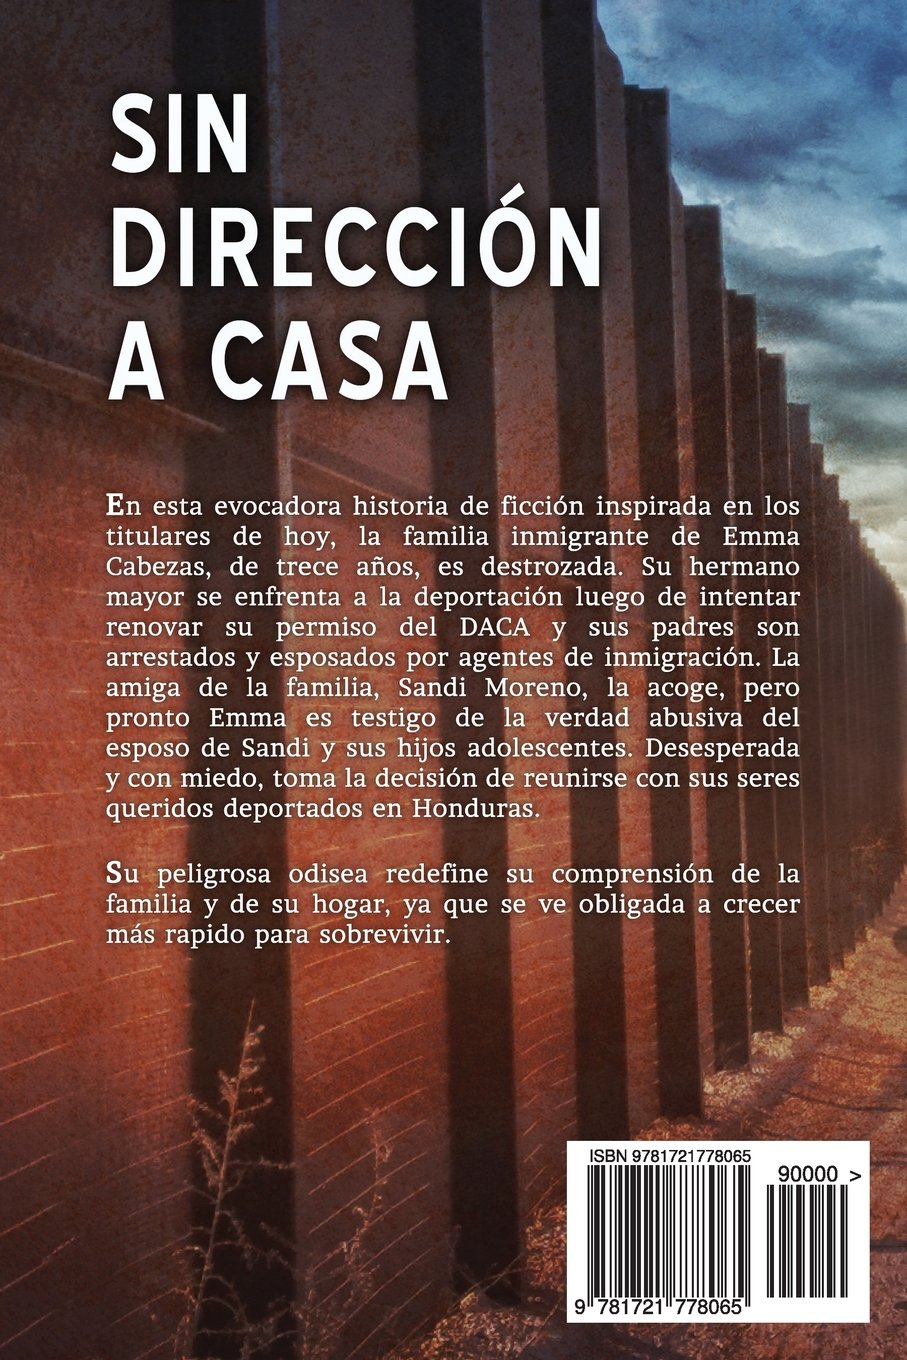 Sin Dirección a Casa (Spanish Edition): Diane Winger: 9781721778065: Amazon.com: Books